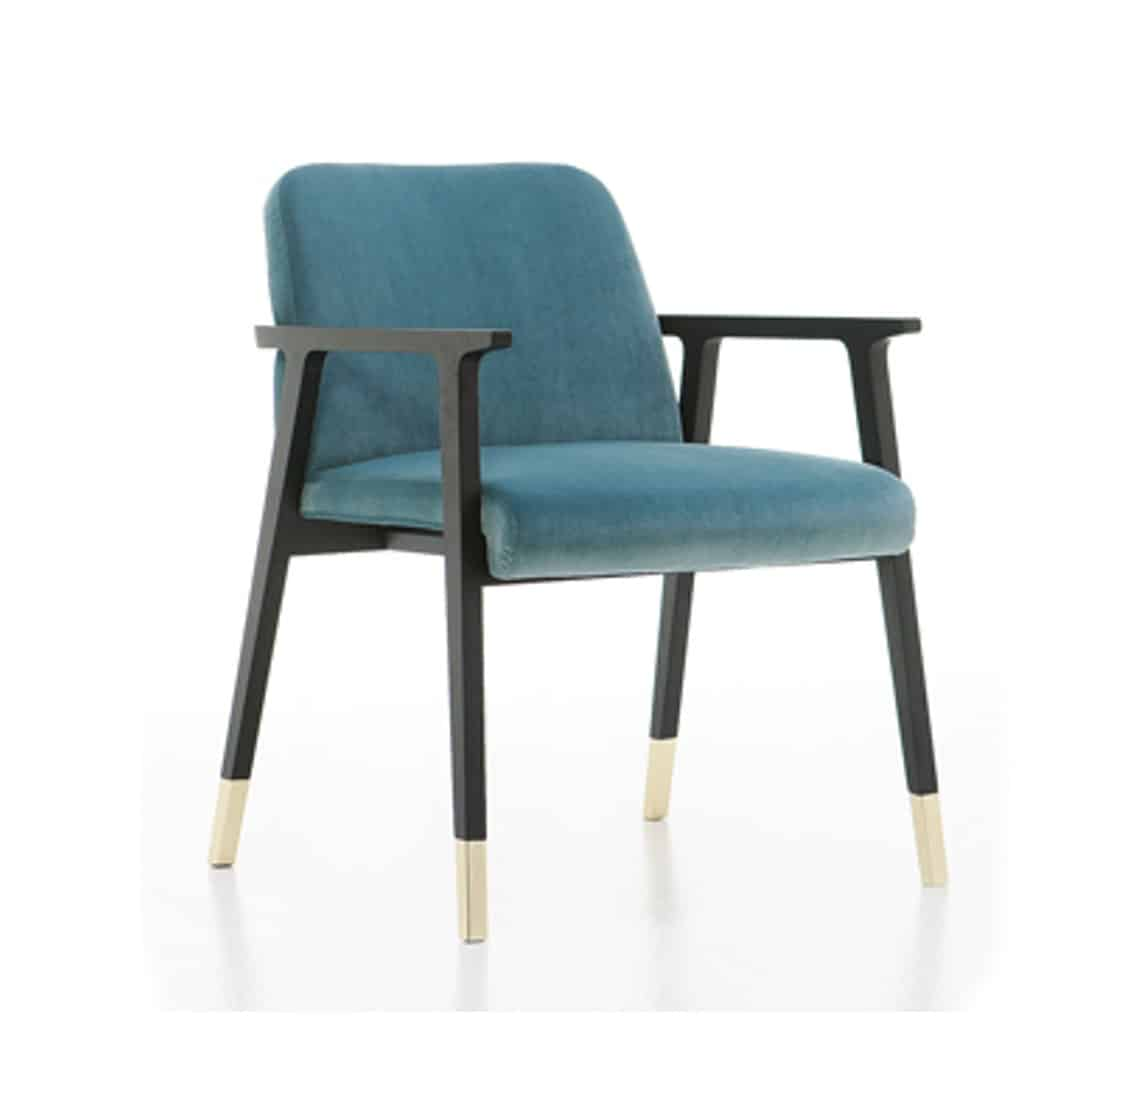 Tennesse Armchair Tenues 2302 Pro Cizeta Available From DeFrae Contract Furniture Blue